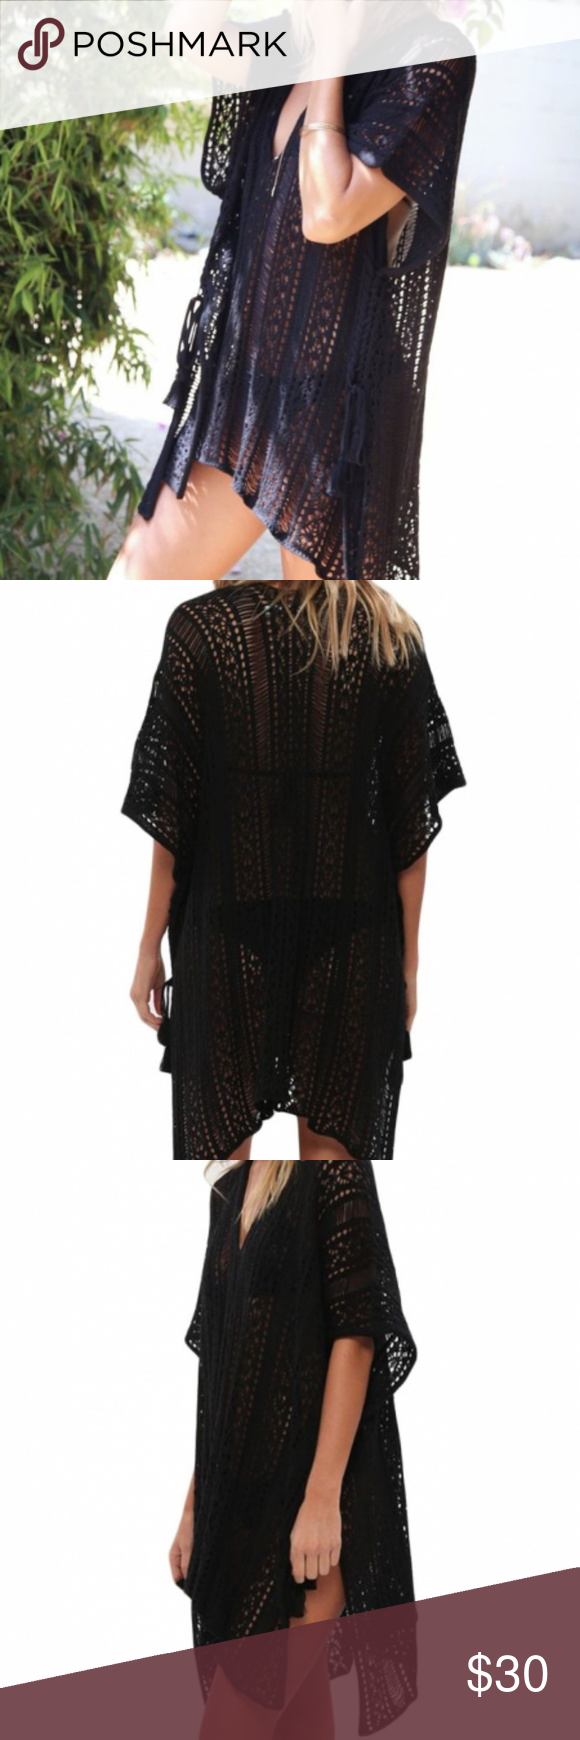 d7dc994318 Black Crochet Knitted Tassel Tie Kimono Beachwear This cute and stylish  swimsuit cover up is the